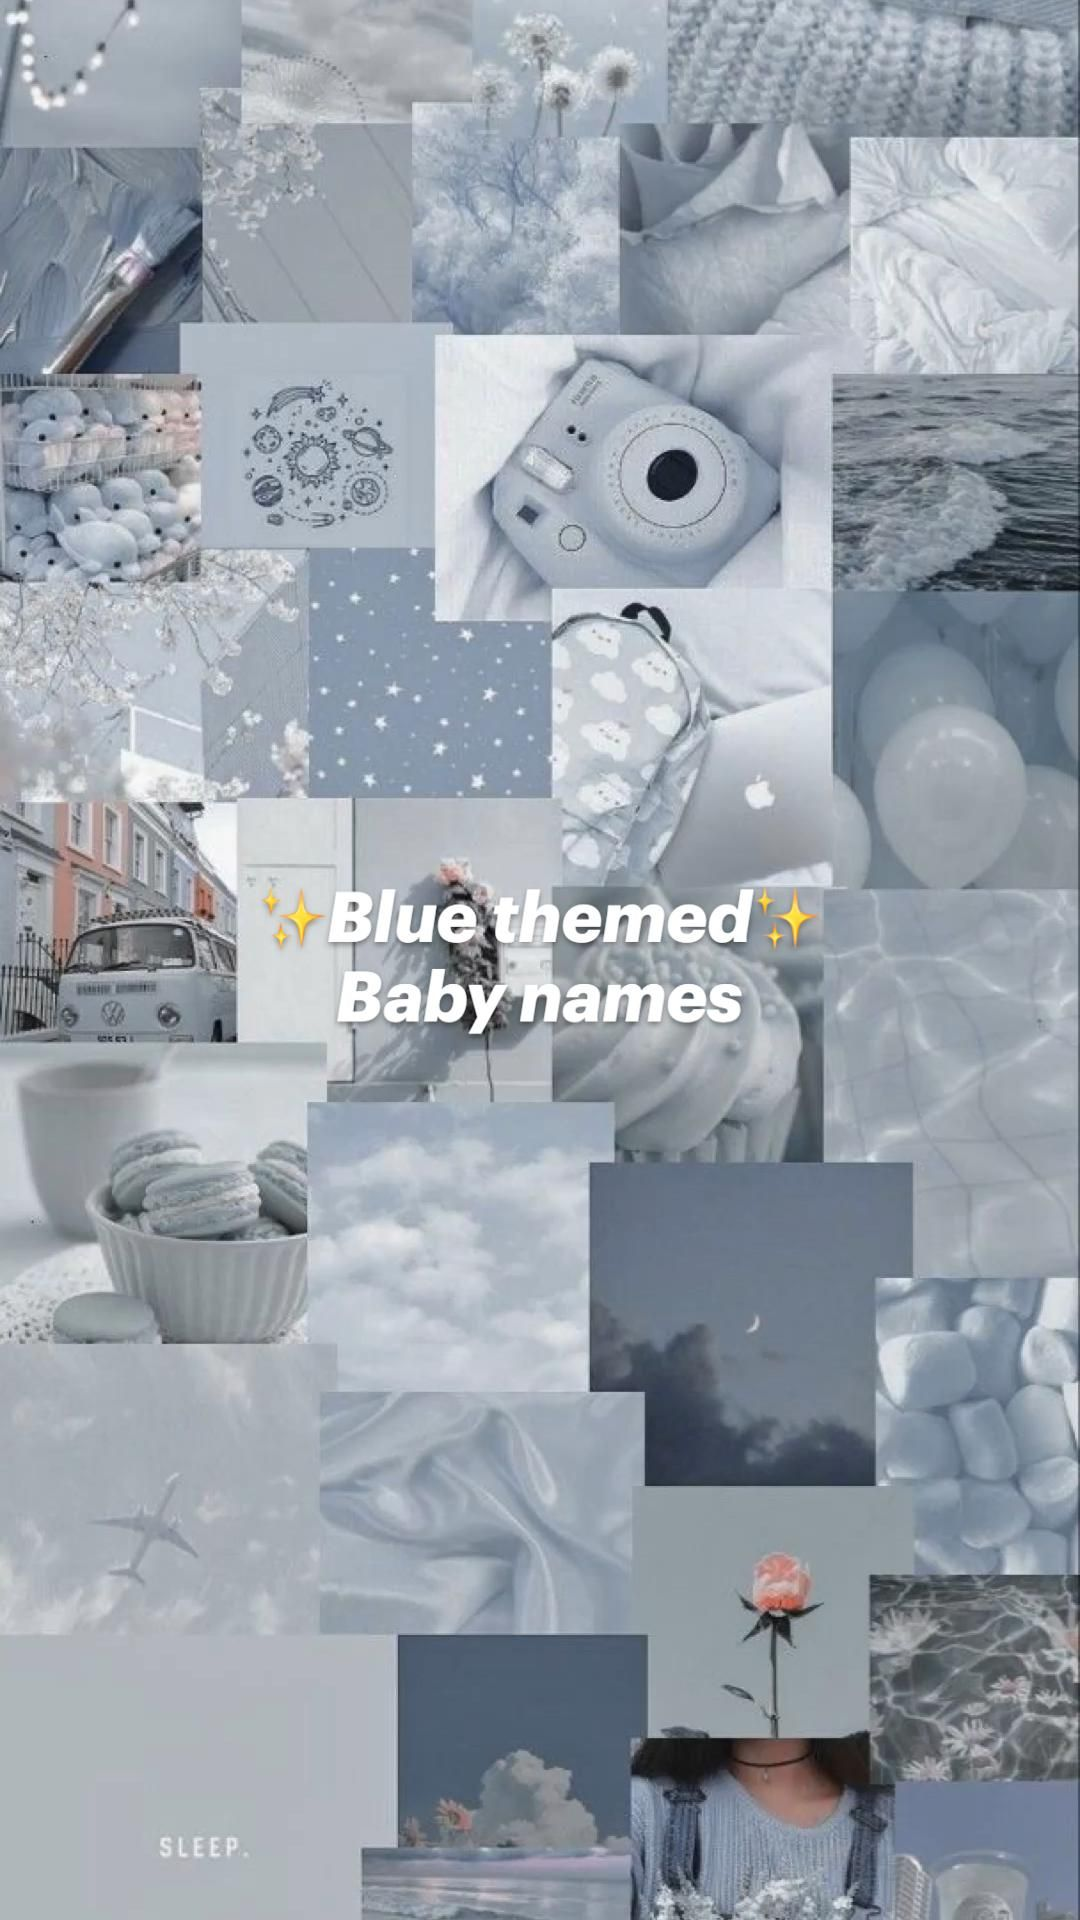 ✨Blue themed✨ Baby names